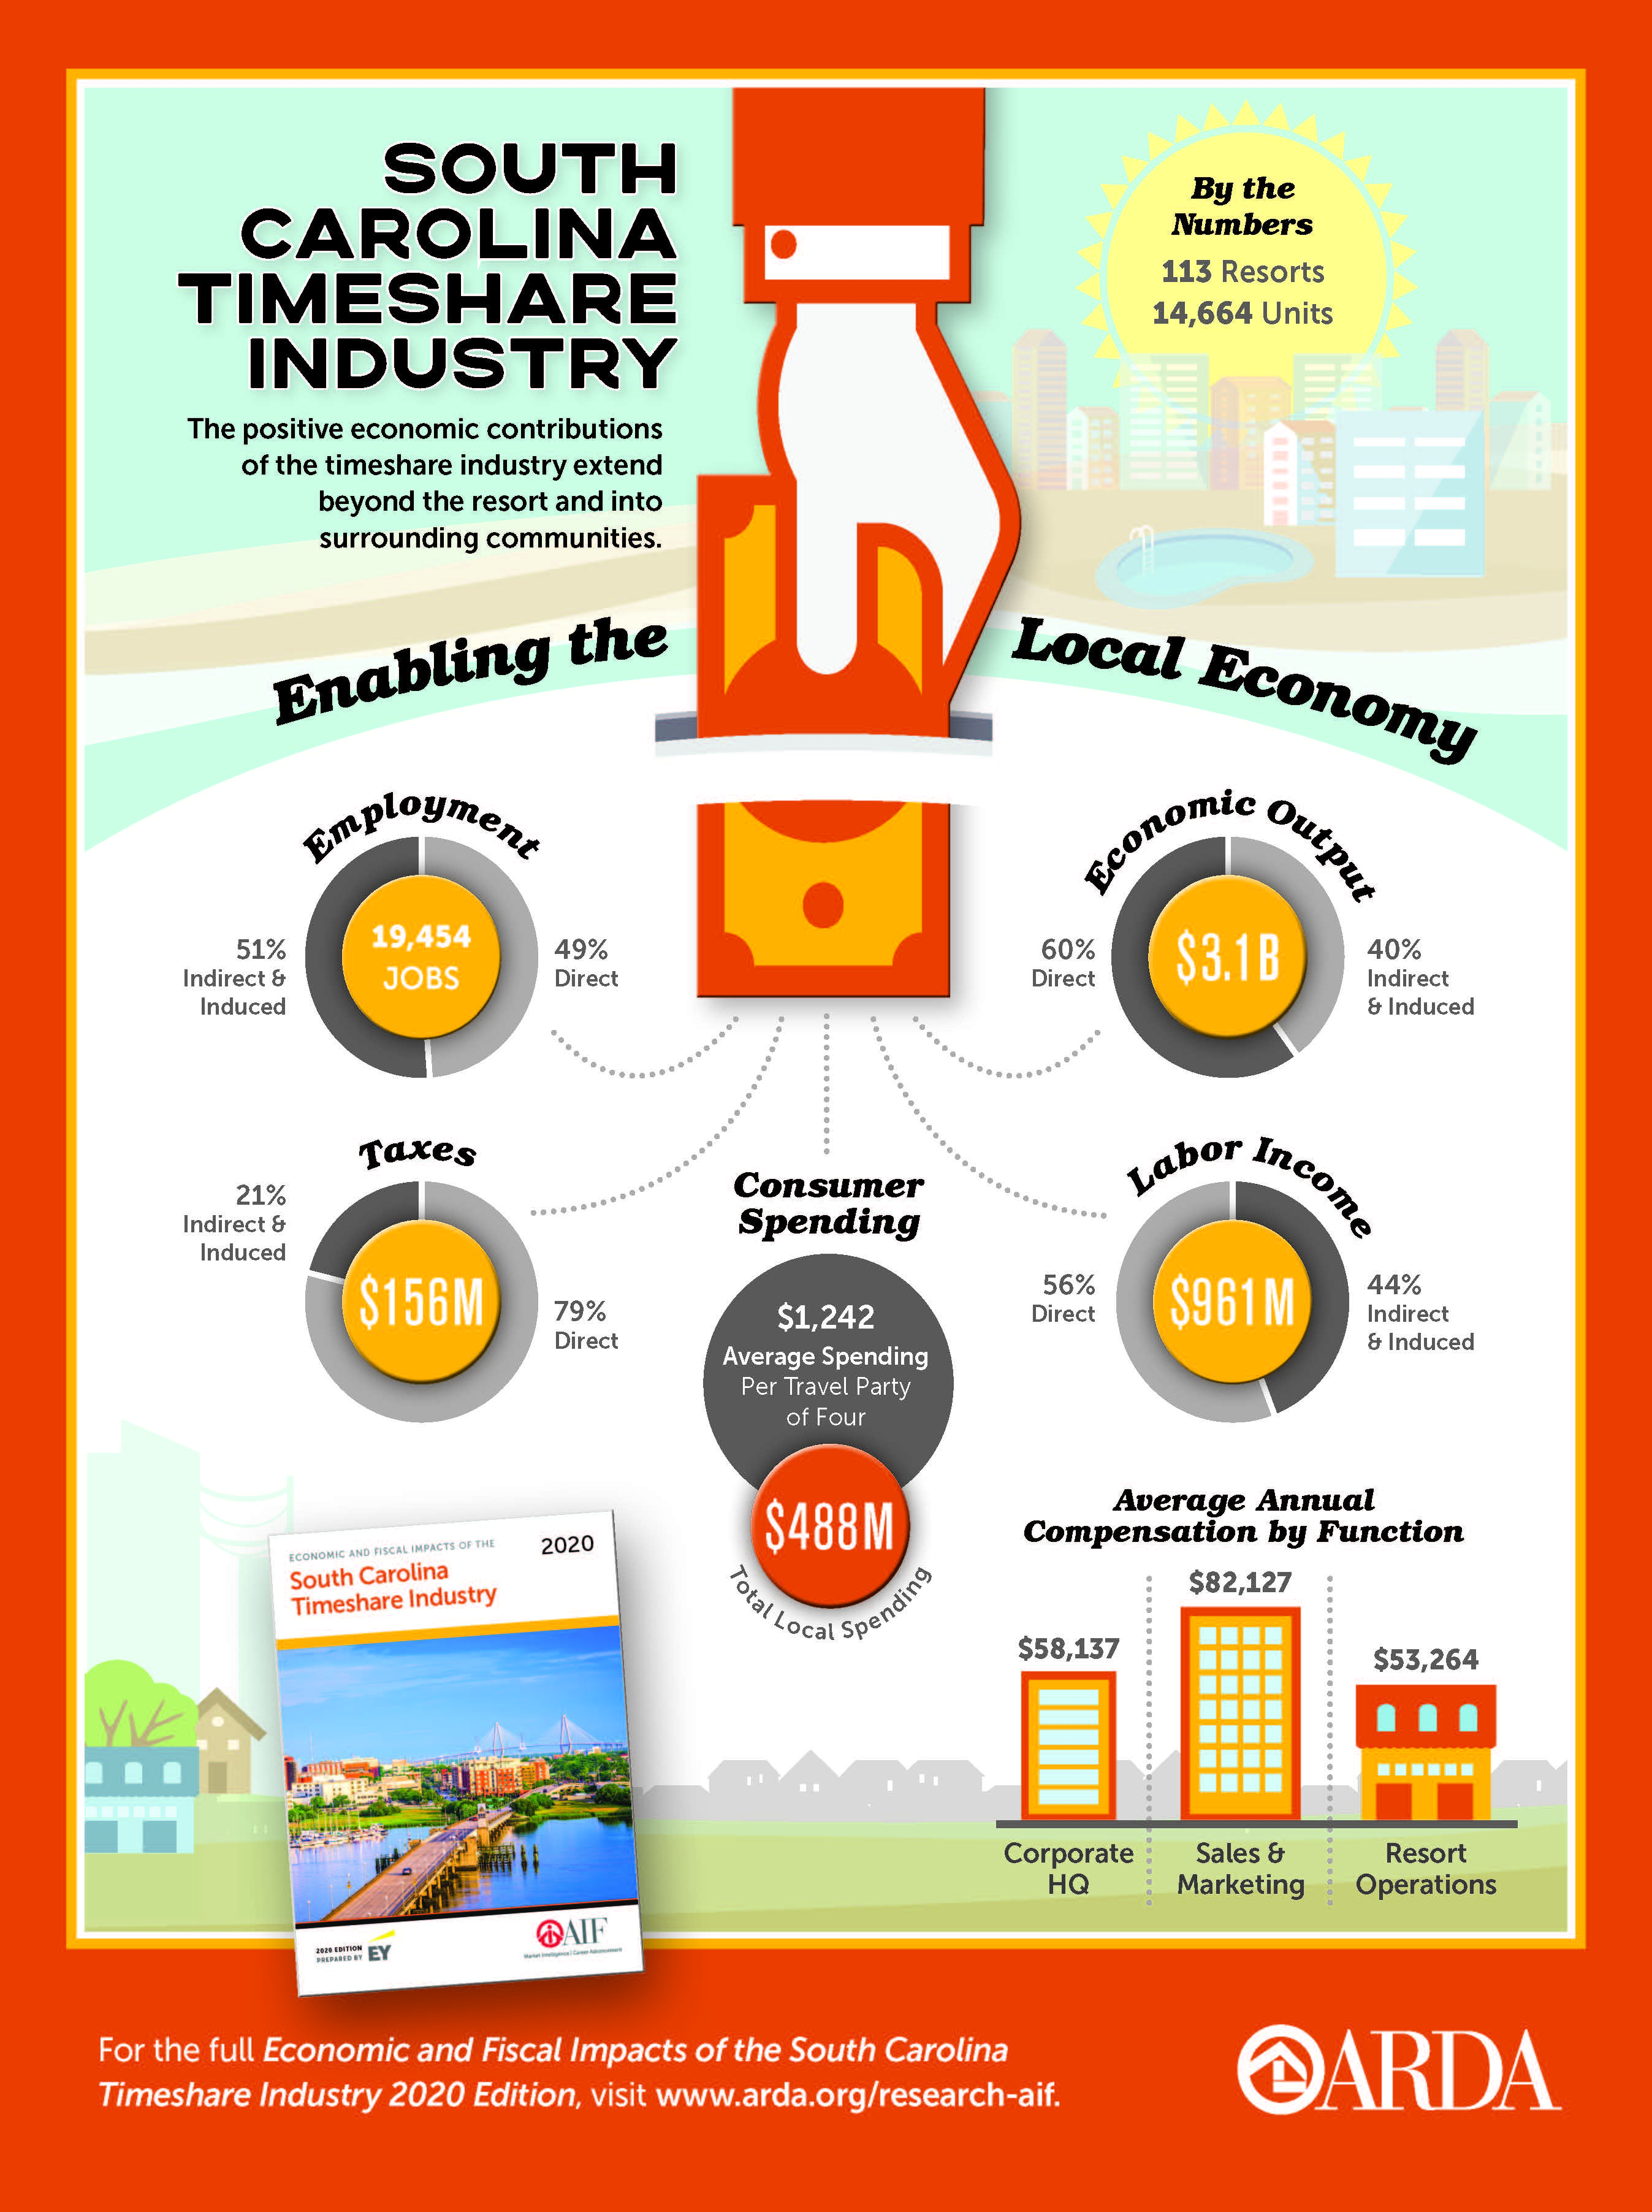 Economic Impact of the Timeshare Industry on the South Carolina Economy, 2020 Infographic